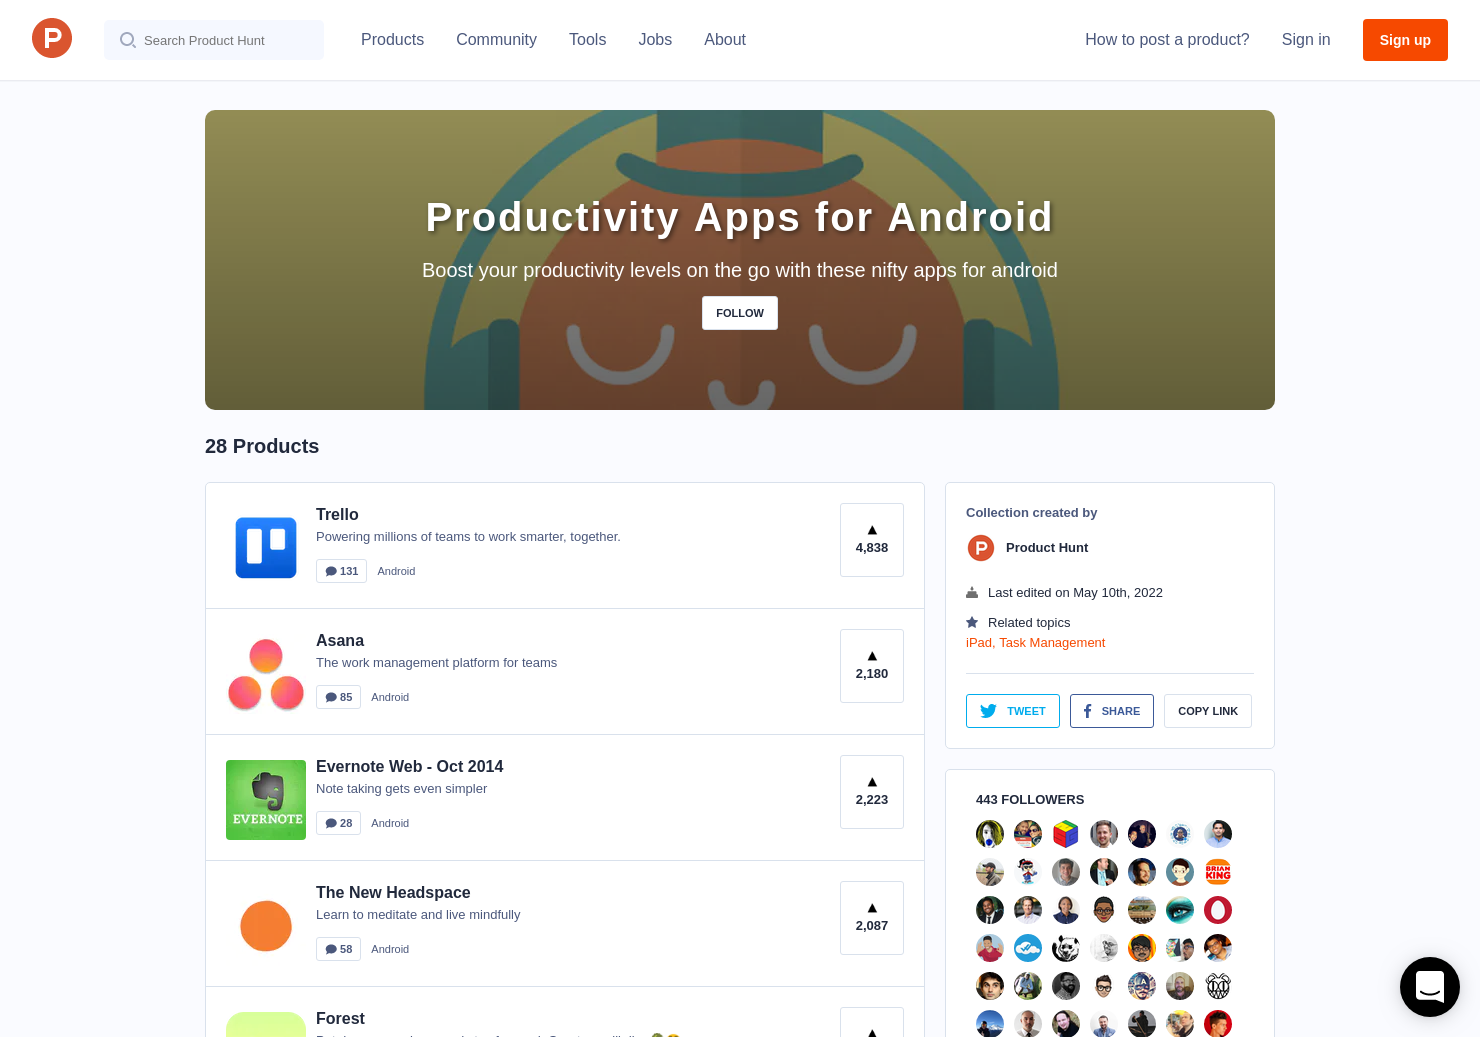 Productivity Apps For Android  Product Hunt. Best Membership Software Found A Credit Card. Does Birth Control Help Acne. Ira To Pay For College Coffee Mugs With Logos. Liability Insurance For Companies. How To Become A Union Electrician. Christian Schools Orlando Getting Braces Off. Free Word Search Online Puzzles. Best Colleges For Acting Majors